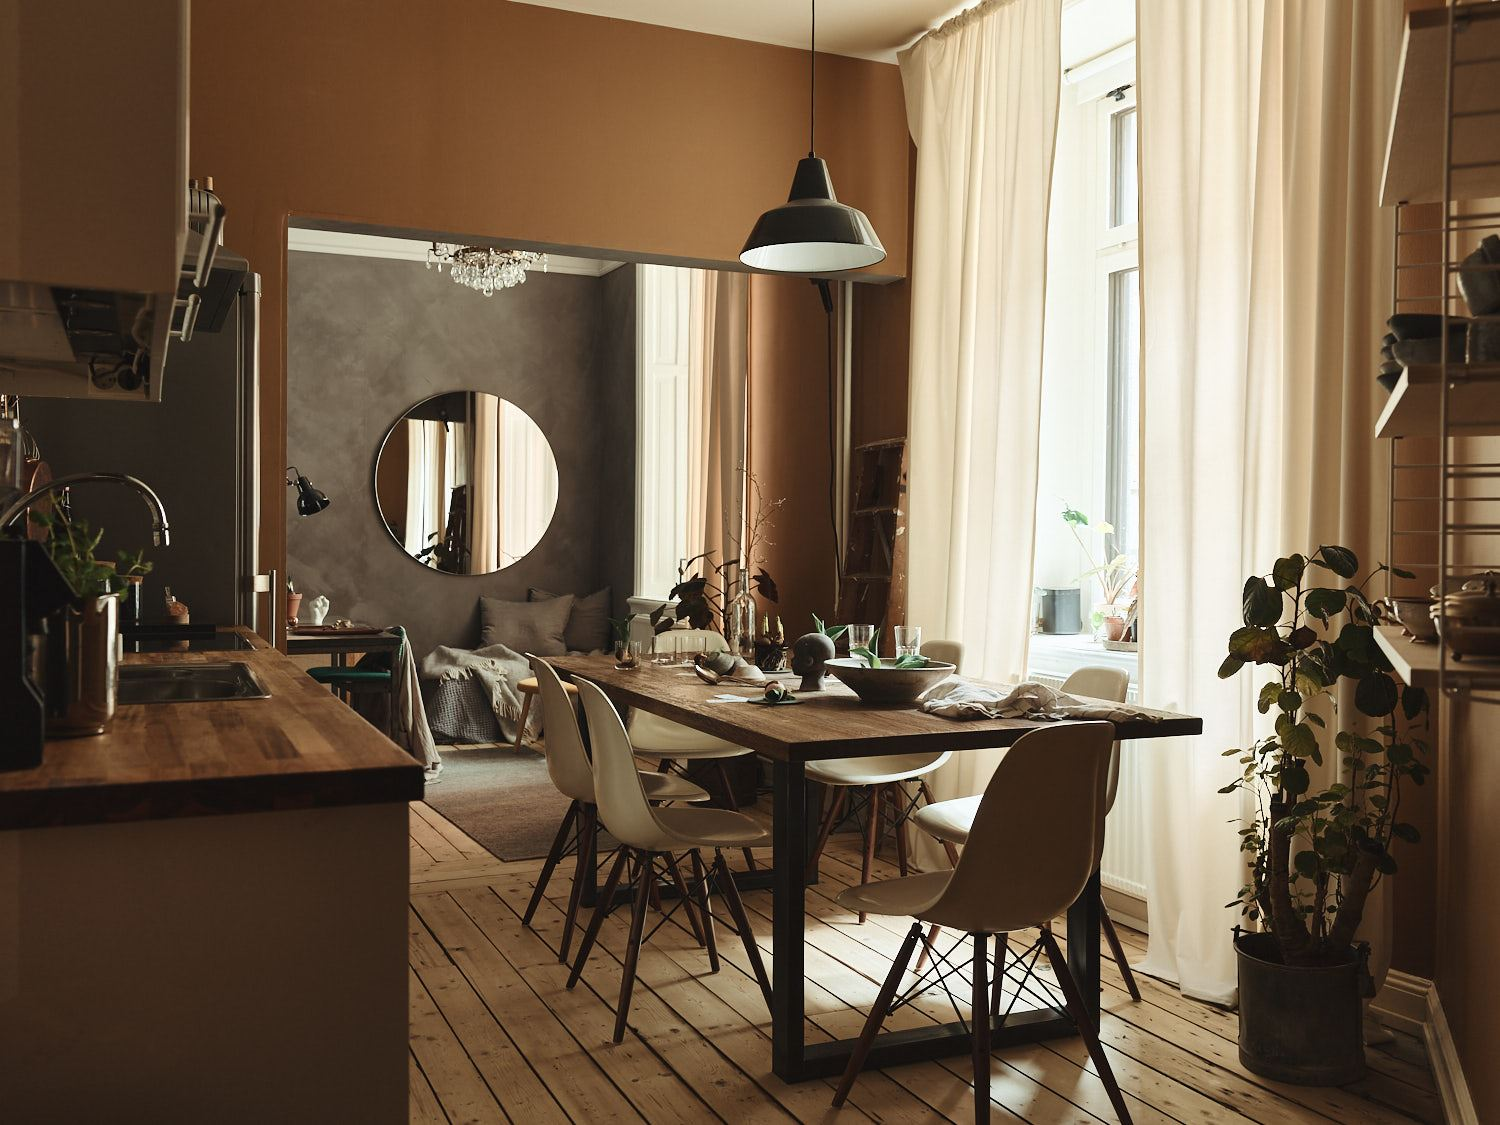 A Scandi apartment in warm caramel hues